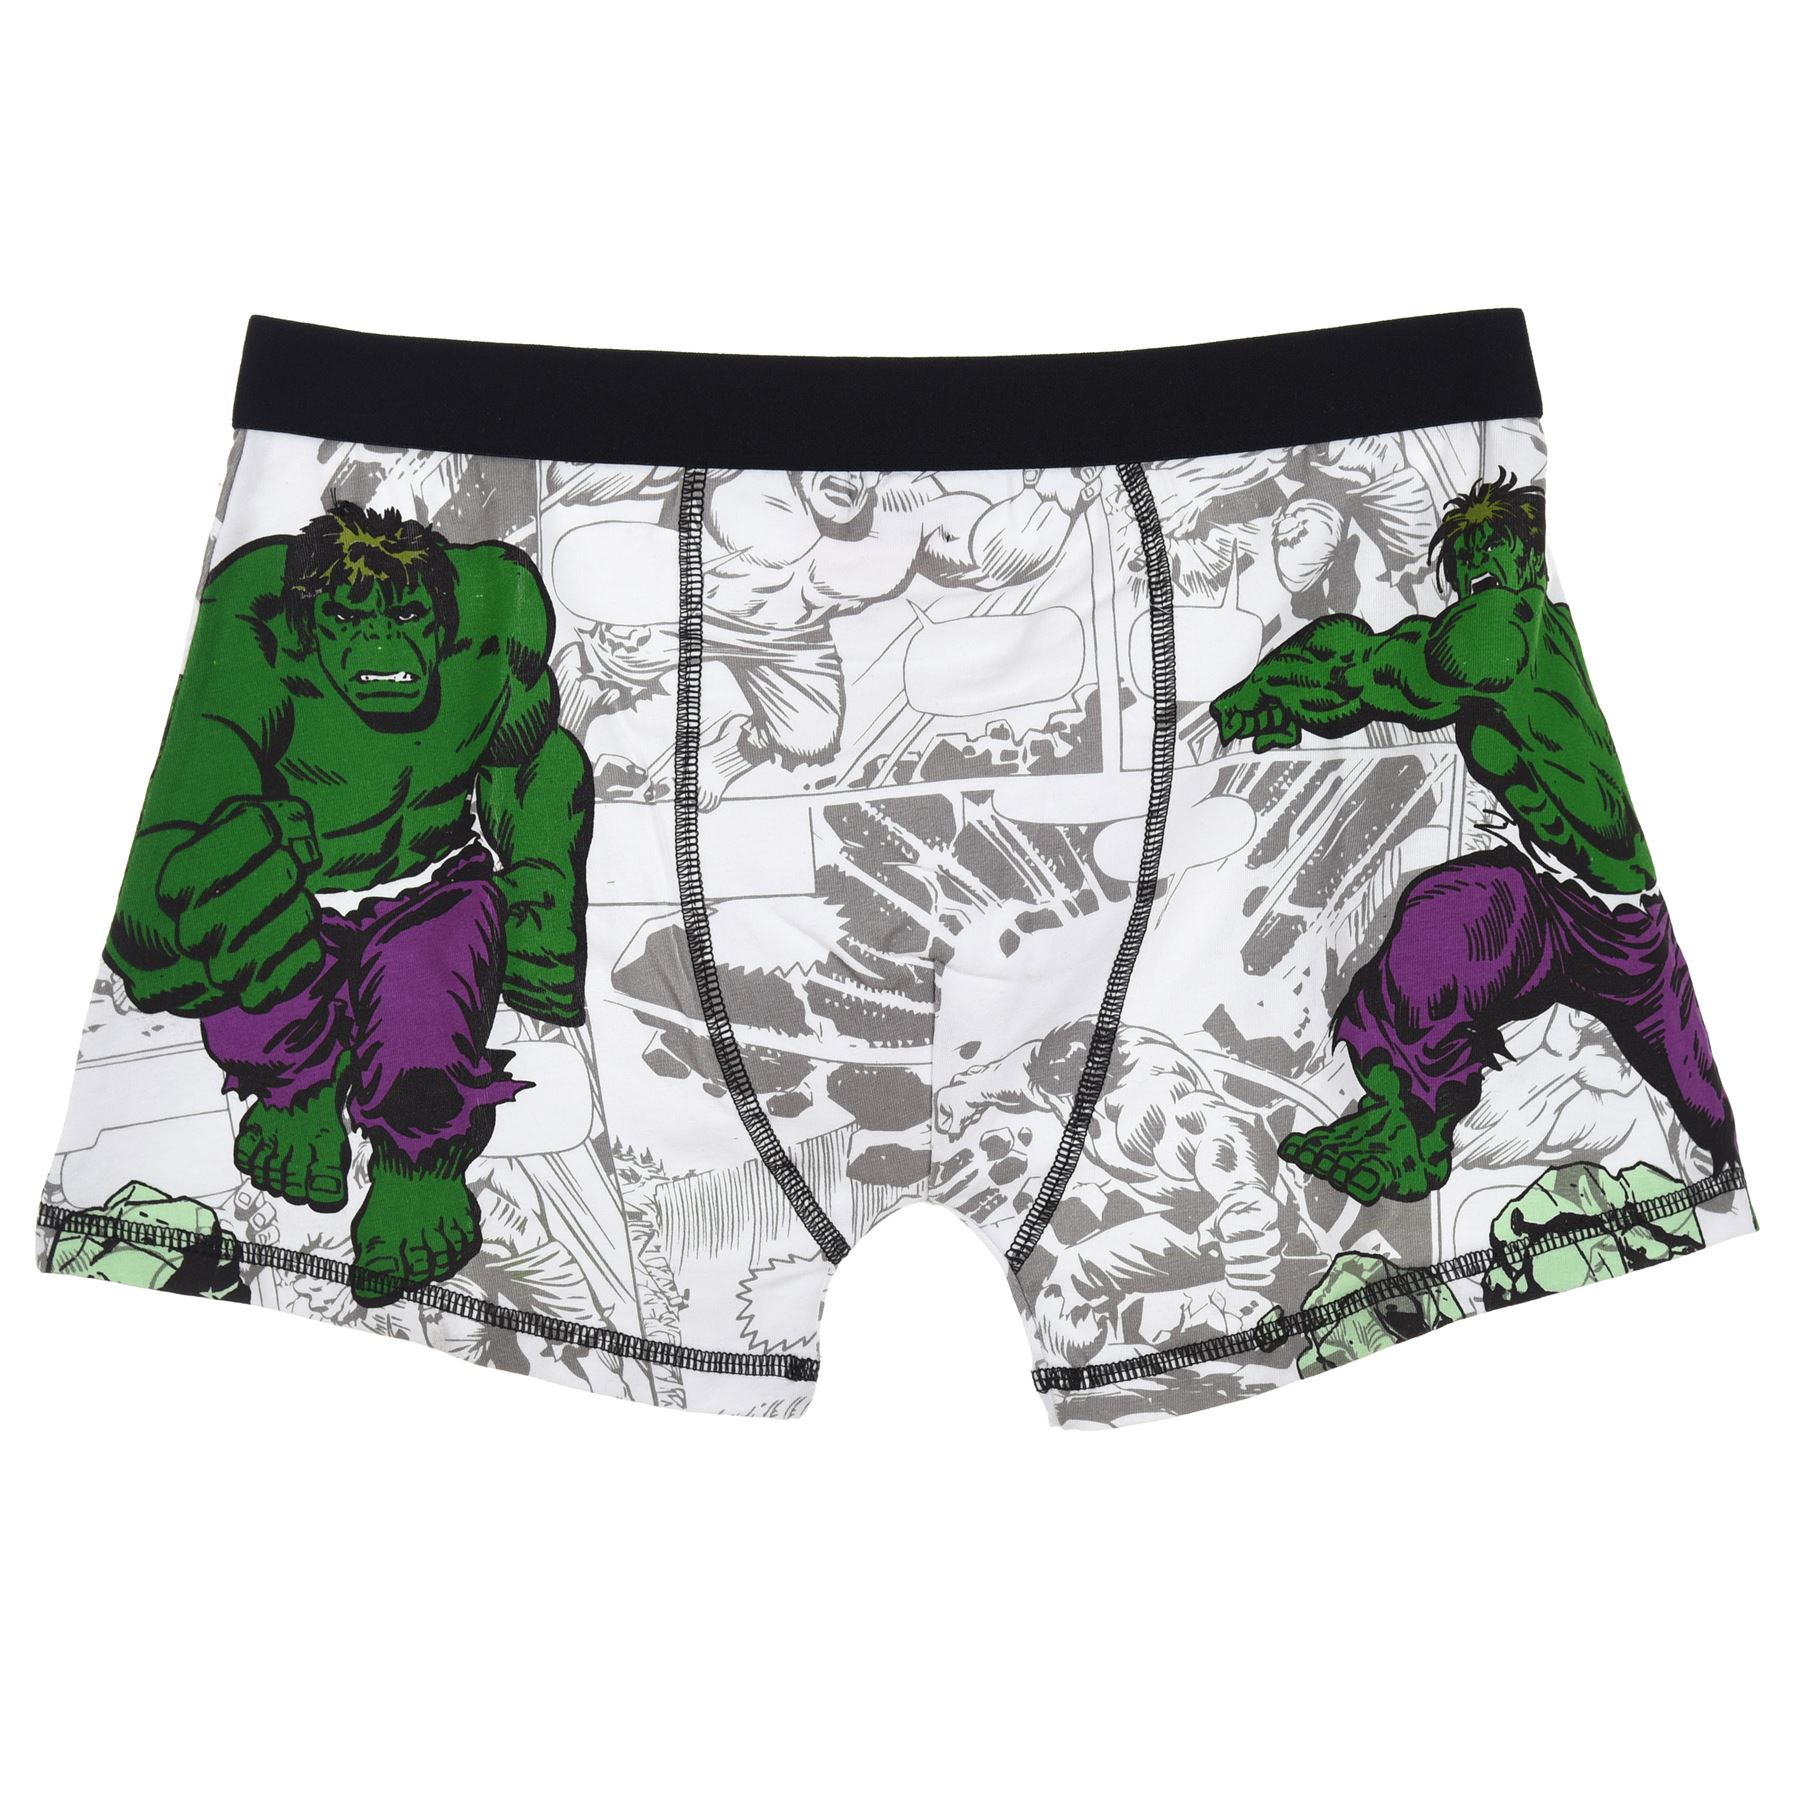 Mens-Official-Character-Trunks-Boxer-Shorts-Boxers-Underwear-2-Pack-Size-S-XL thumbnail 25